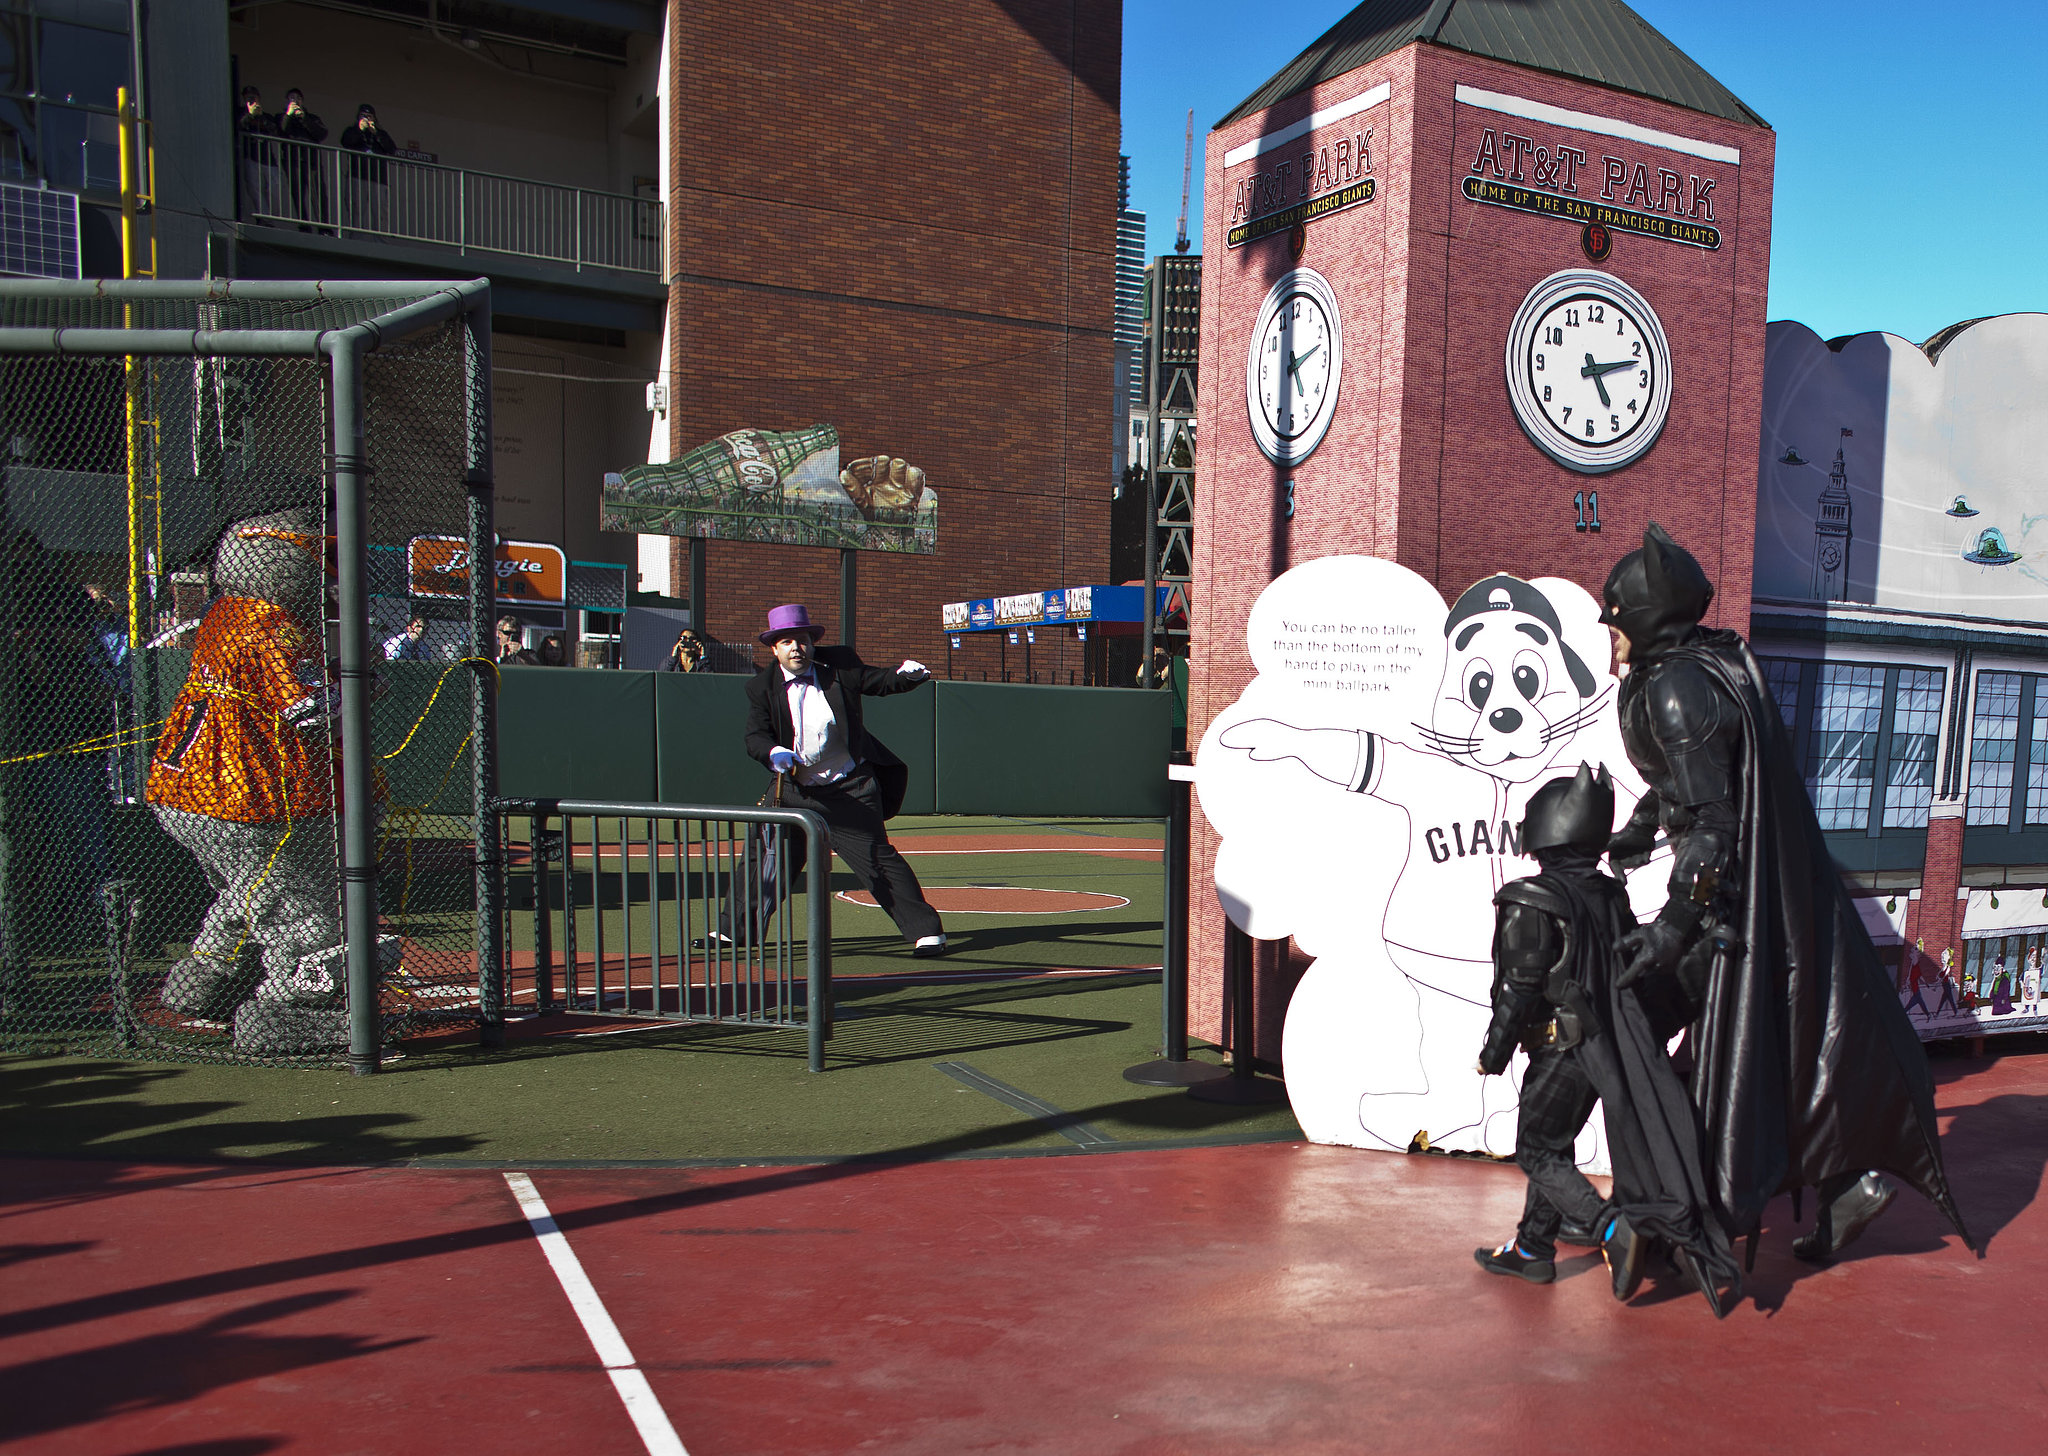 Batman and Batkid arrived at AT&T Park to save San Francisco Giants mascot Lou Seal from the Penguin.